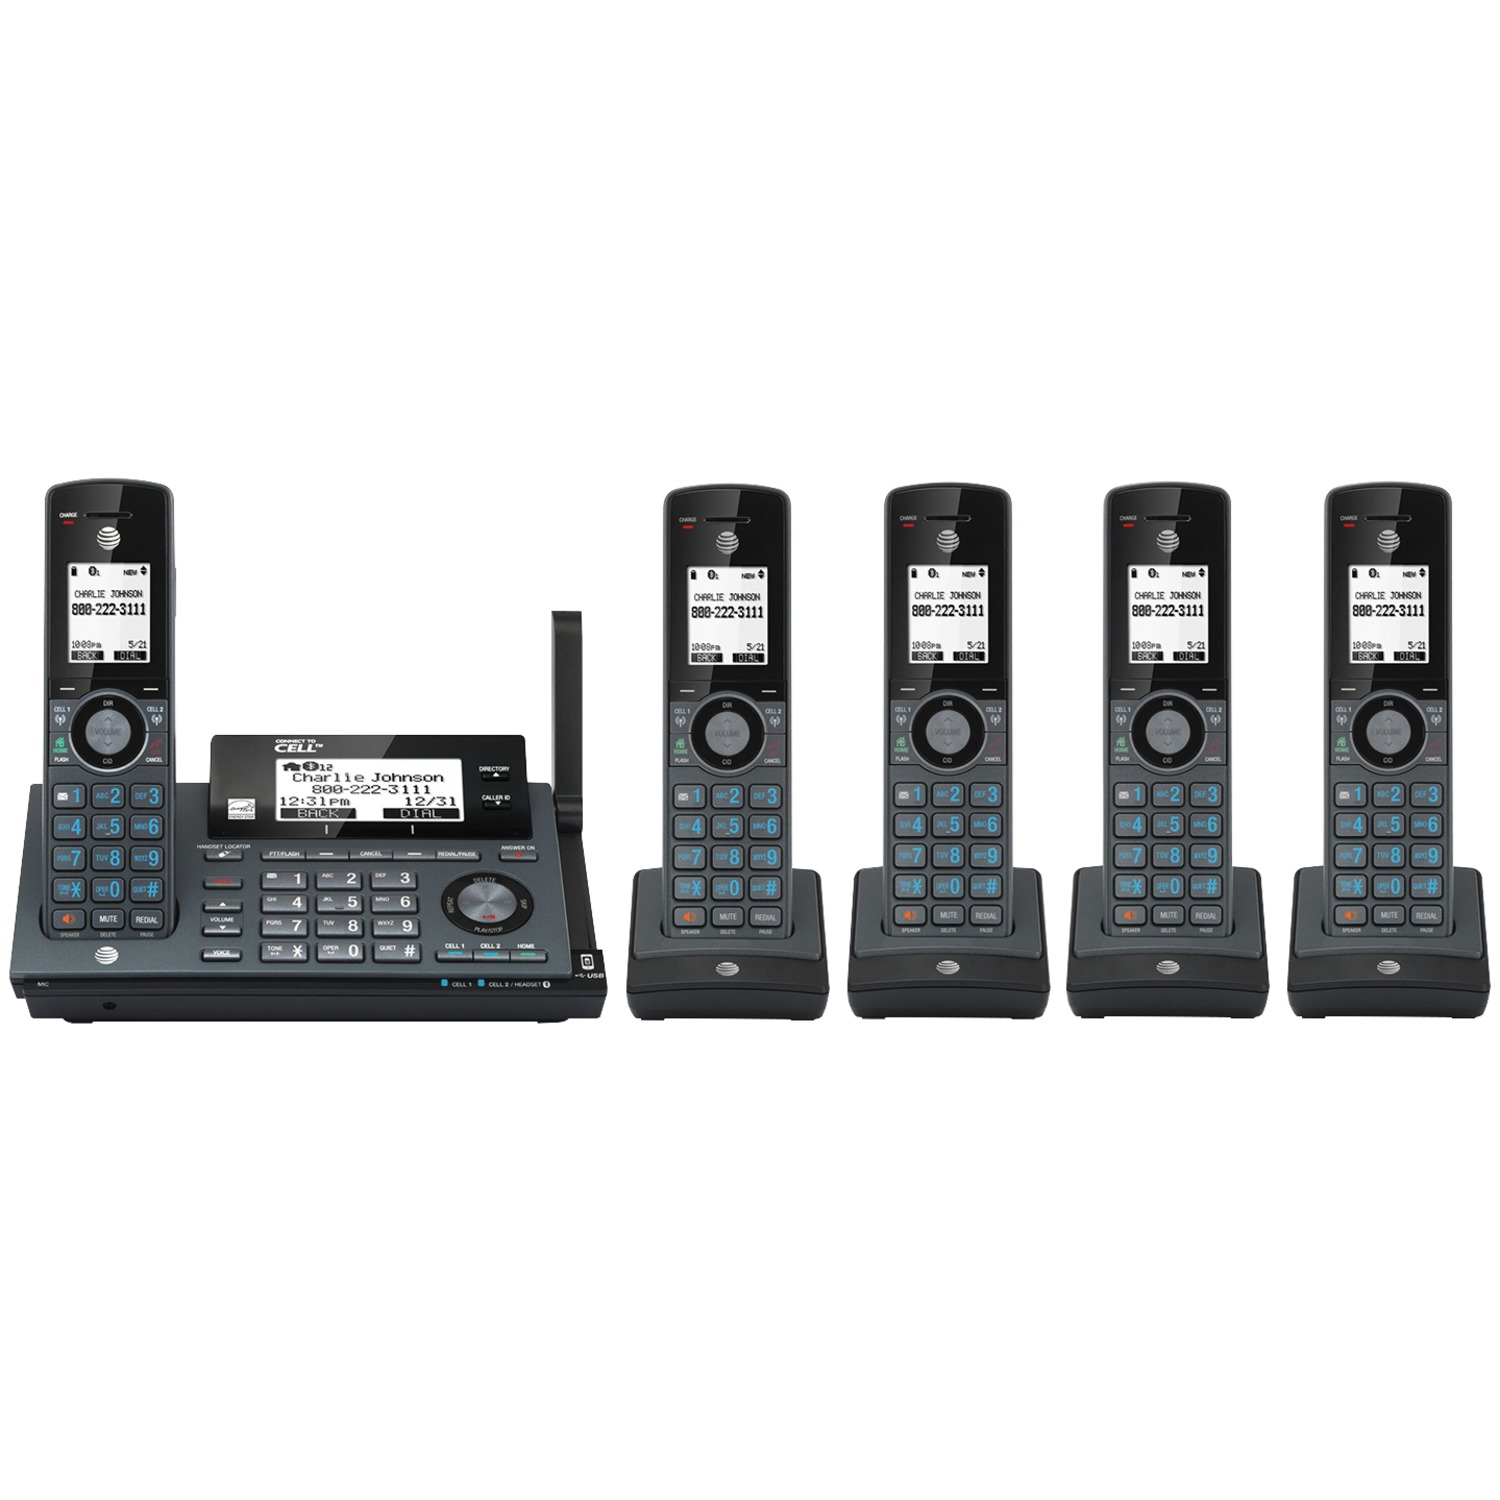 AT&T 5 handset System with blocker